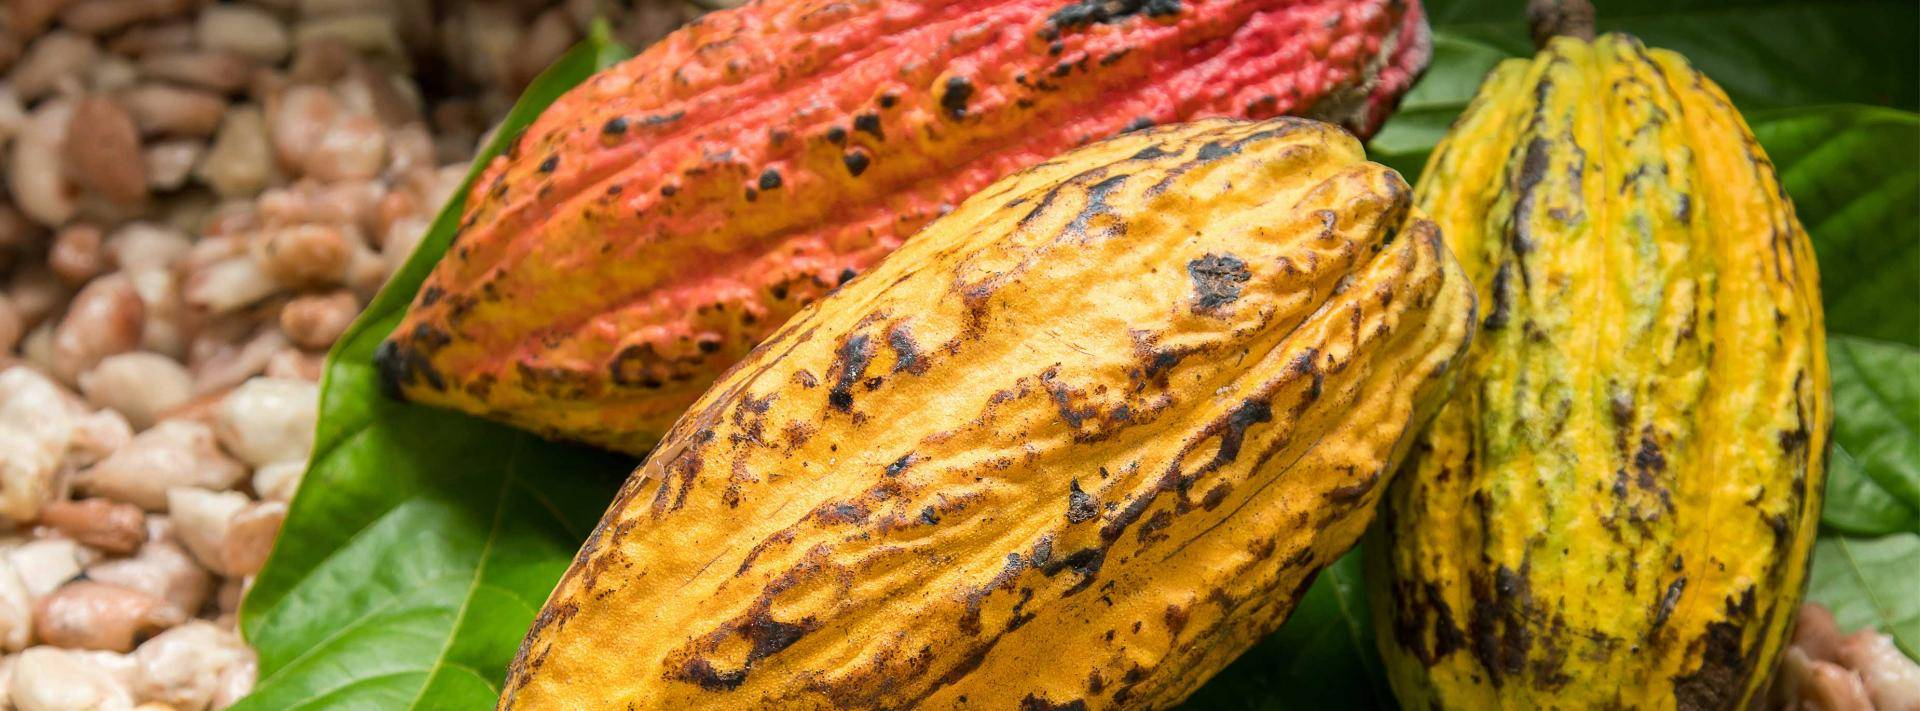 Organic Cocoa Beans and Nuts